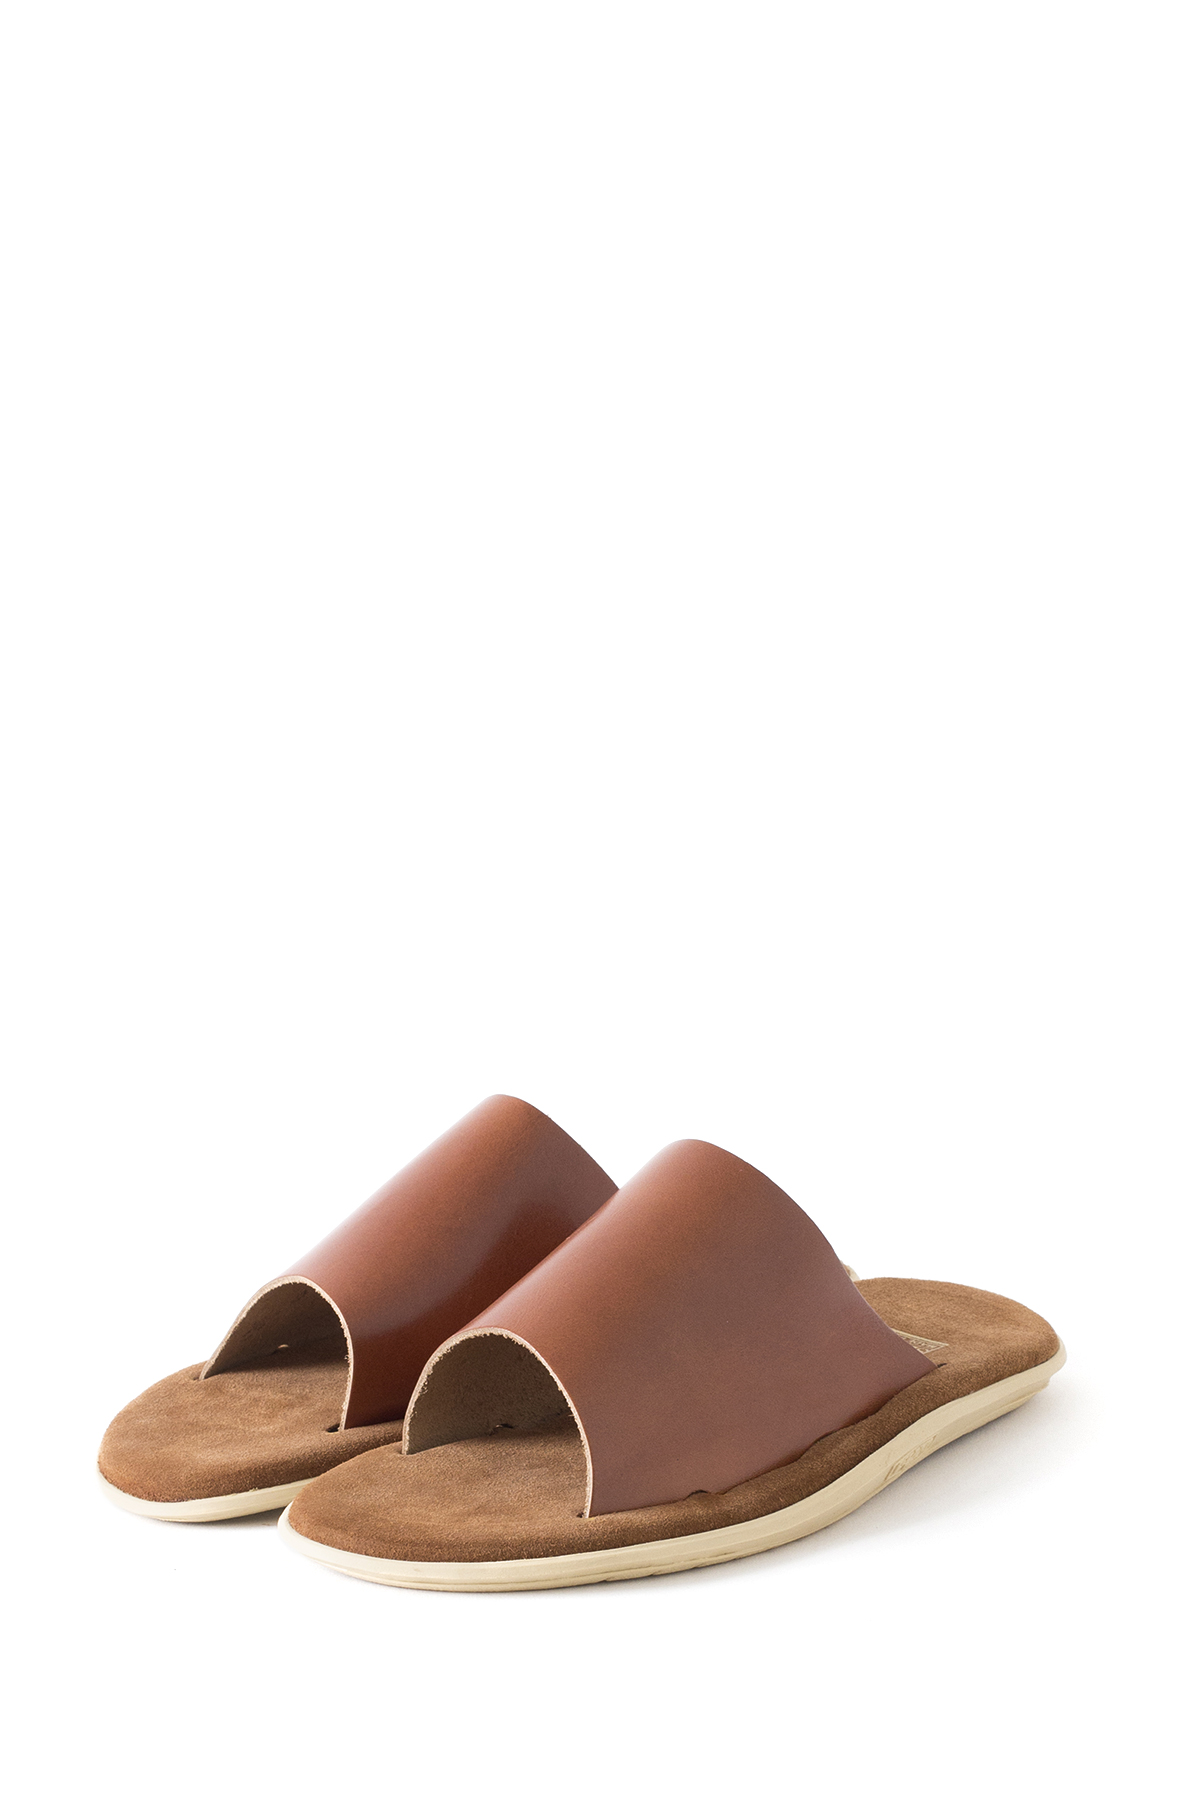 ISLAND SLIPPER : PTS705 (Leather Suede / Cognac)